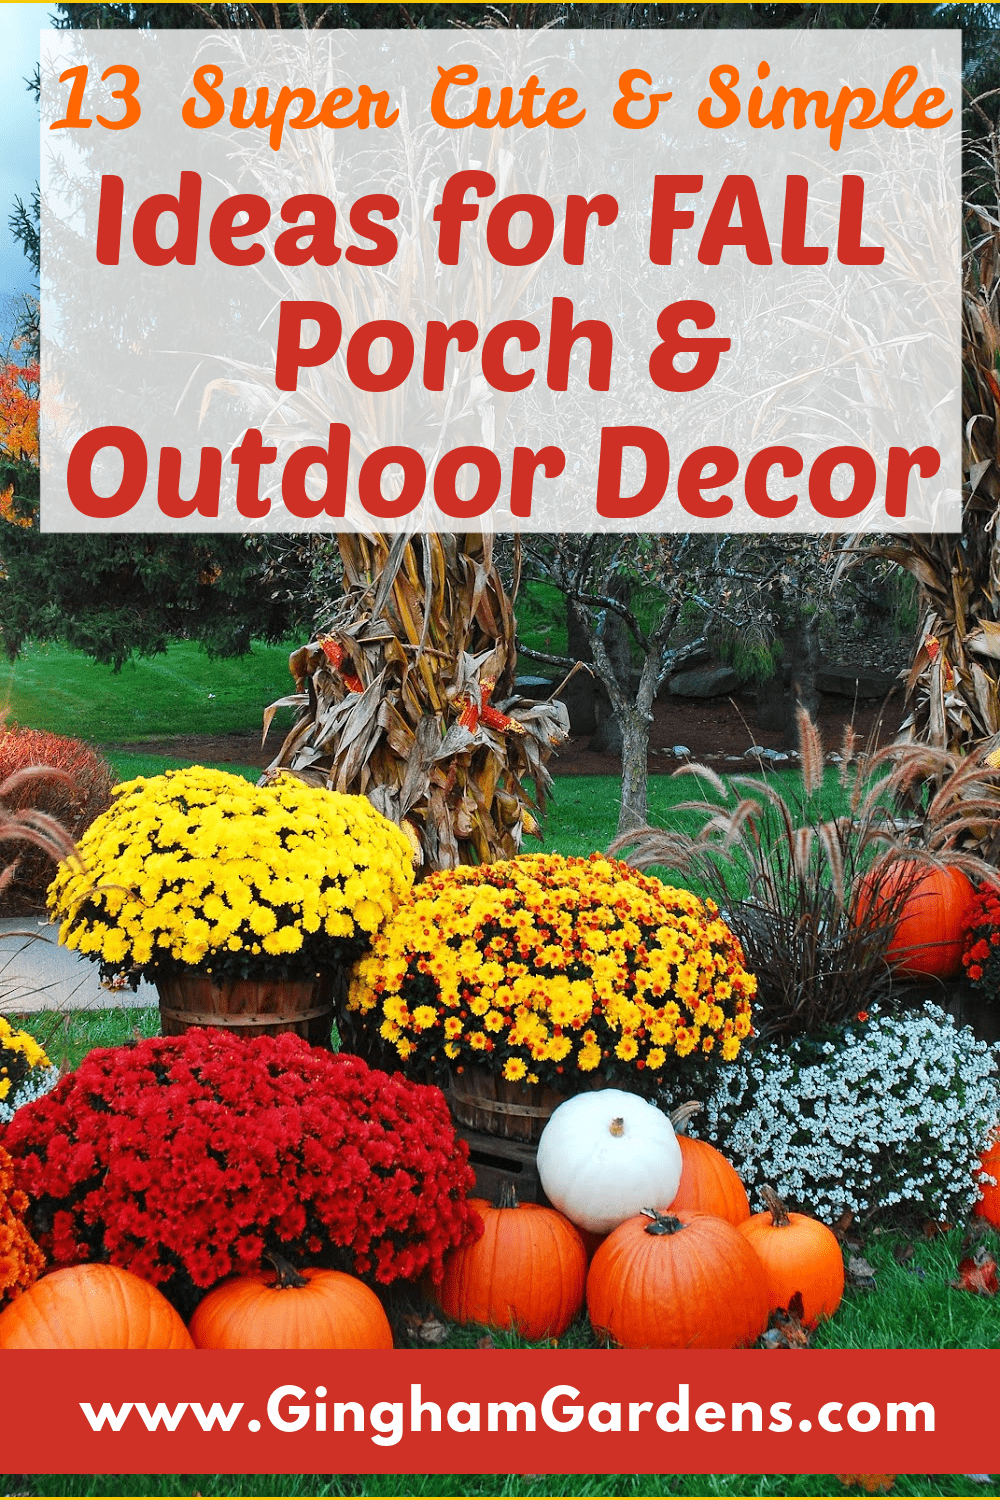 Image of Mums and Pumpkins with text overlay - 13 super cute and simple ideas for Fall Porch & Outdoor Decor